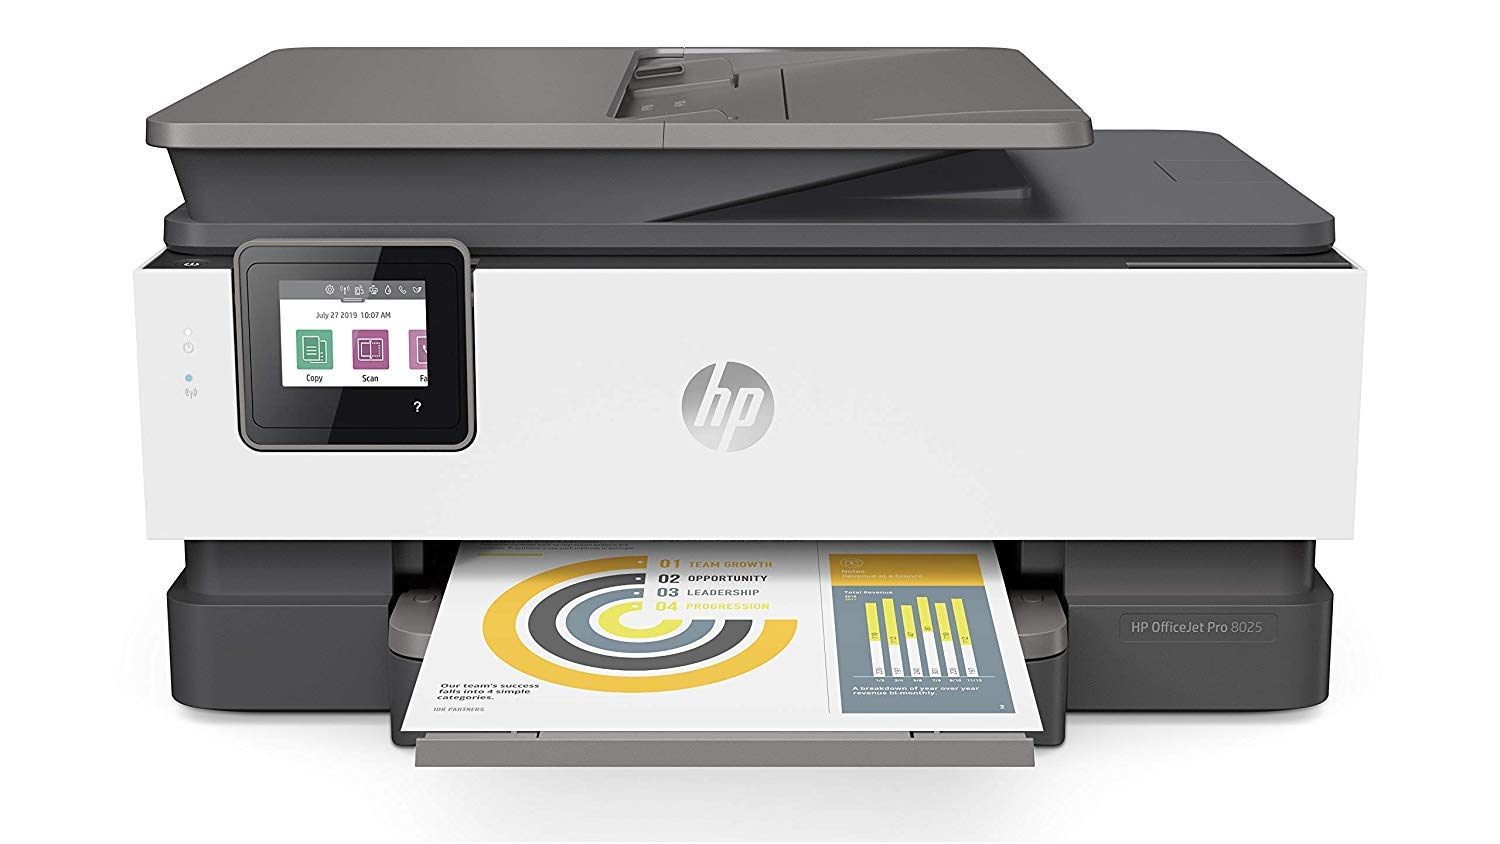 HP OfficeJet Pro 8025 All-in-One Printer - Impresora ...